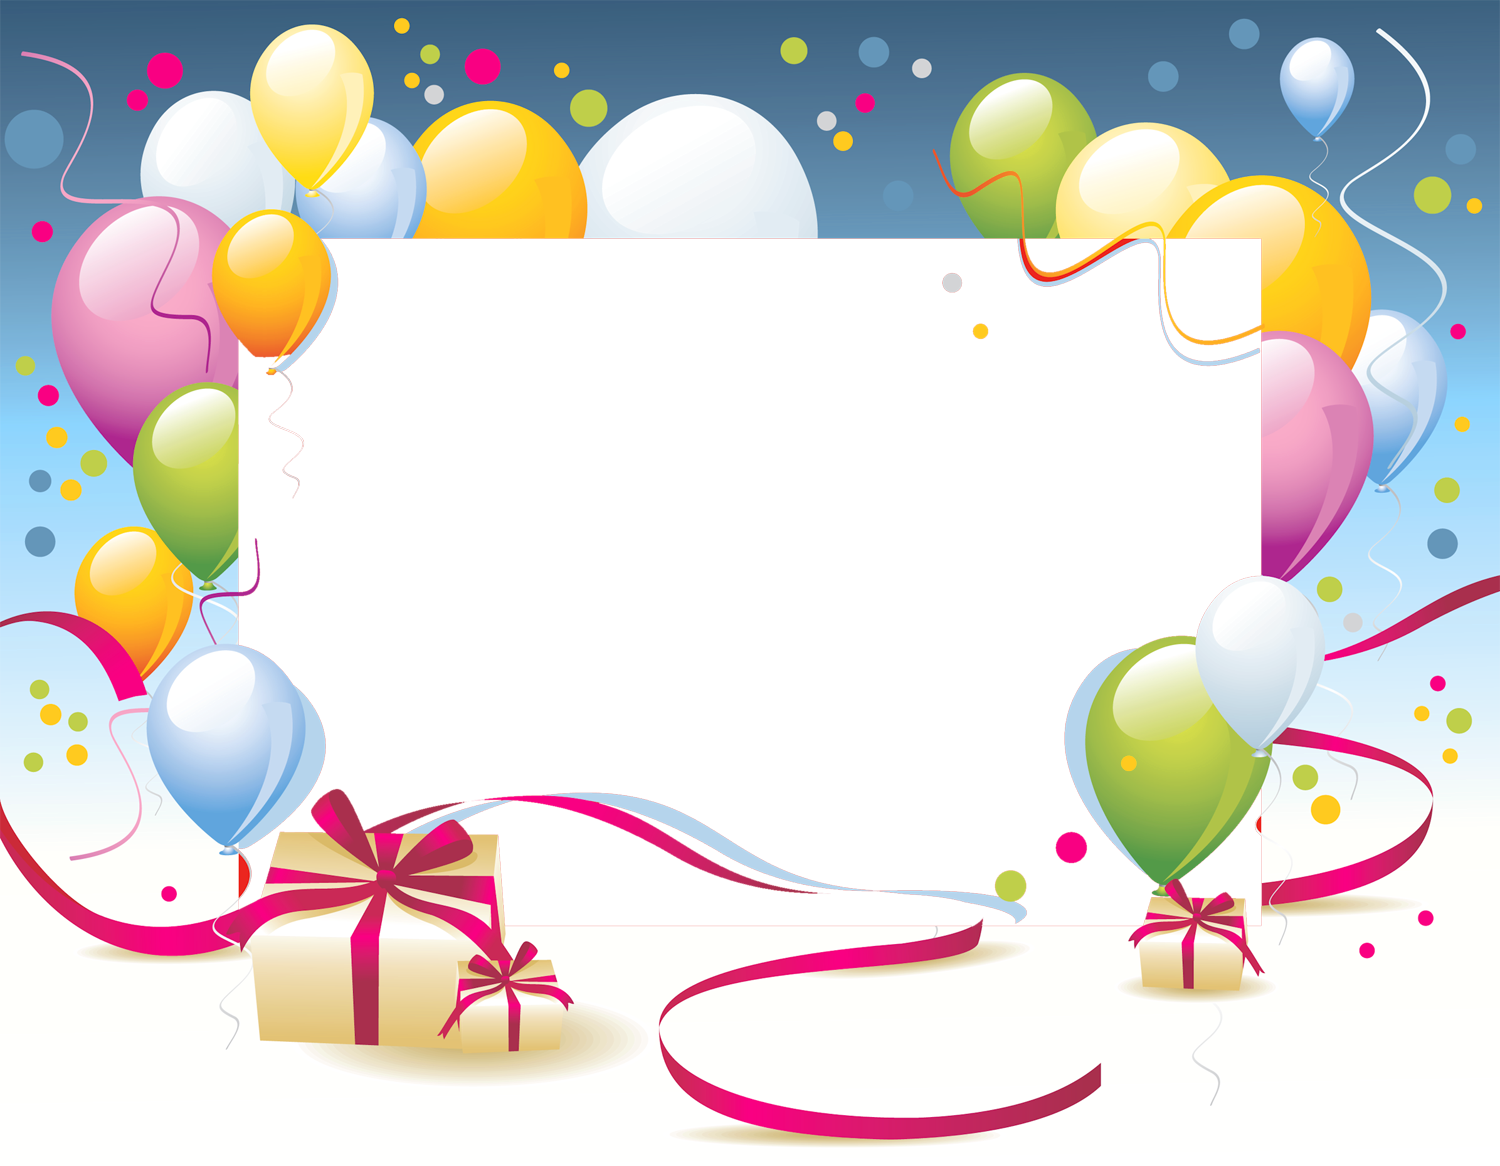 Birthday Transparent Png Photo Frame Gallery Yopriceville High Quality Images And Transpare Birthday Photo Frame Happy Birthday Cards Happy Birthday Frame